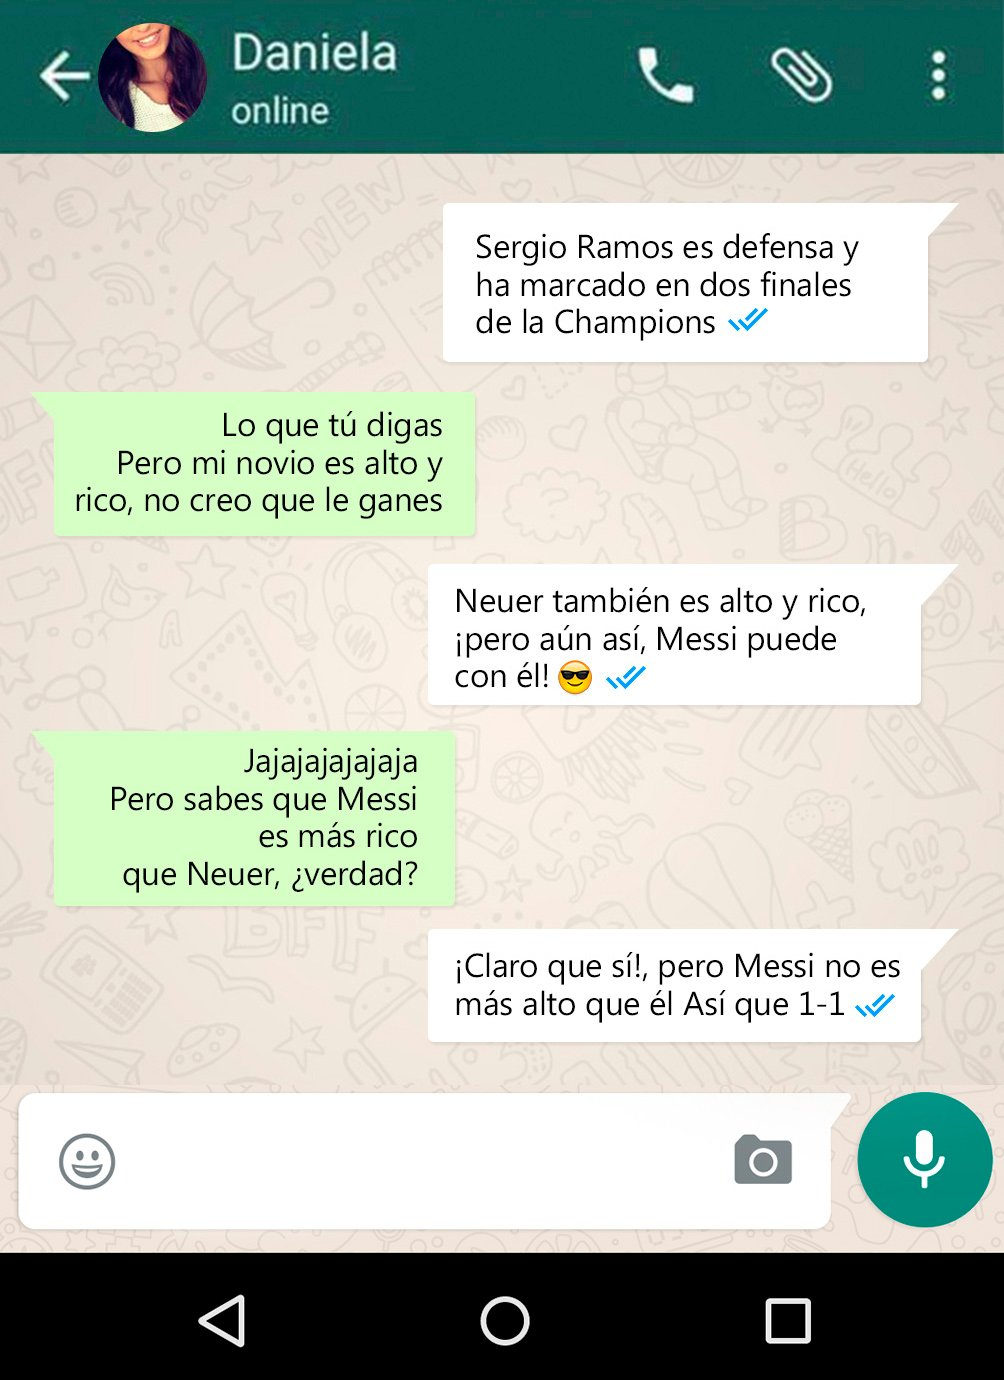 Este es un colo y no chingaderas - 2 part 4